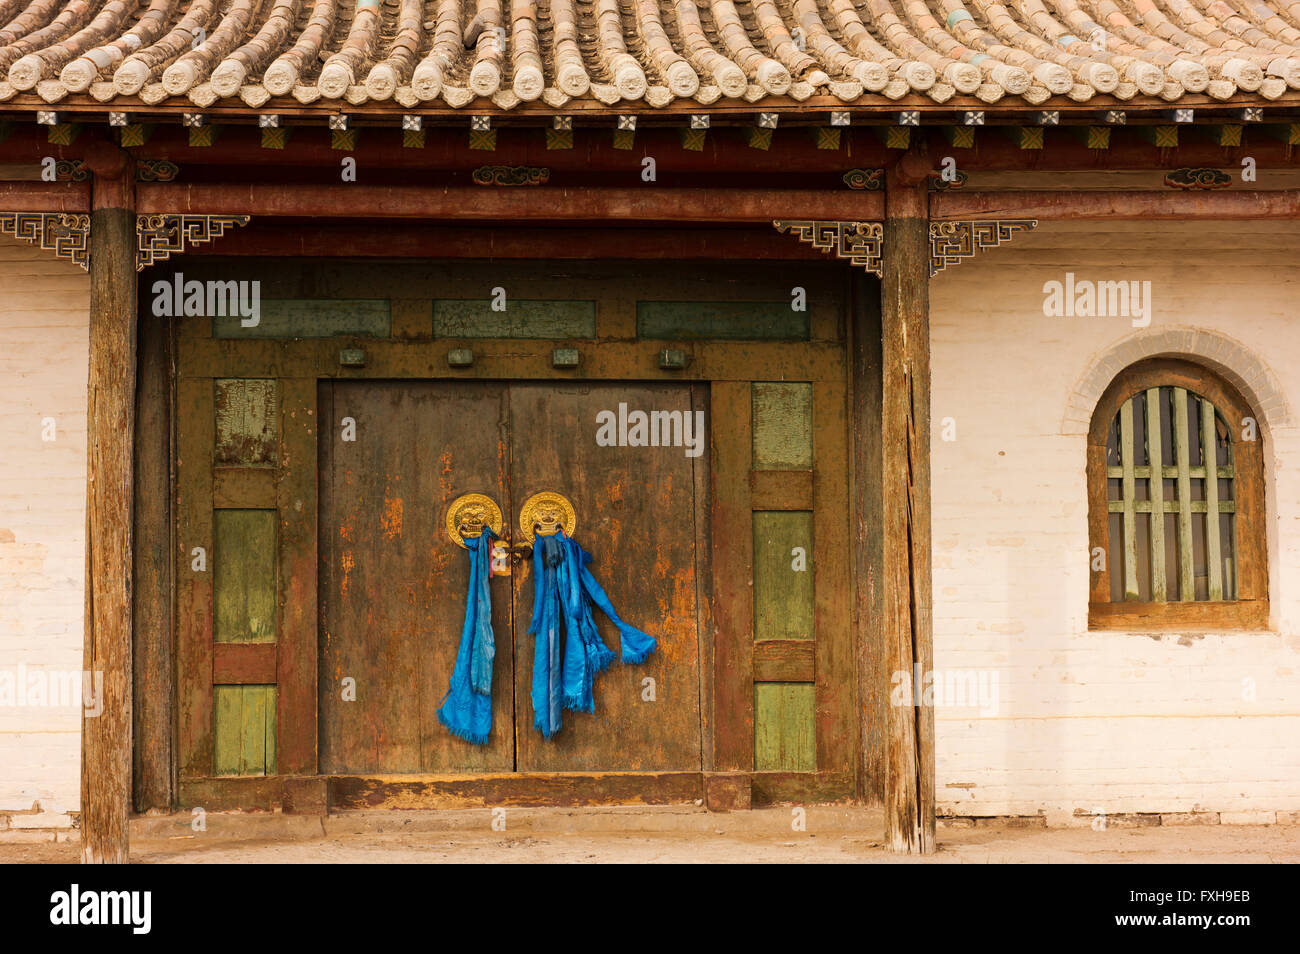 Doors with traditional pale blue sashes at the Erdene Zuu Monastery in Ovorkhangai Province. - Stock Image